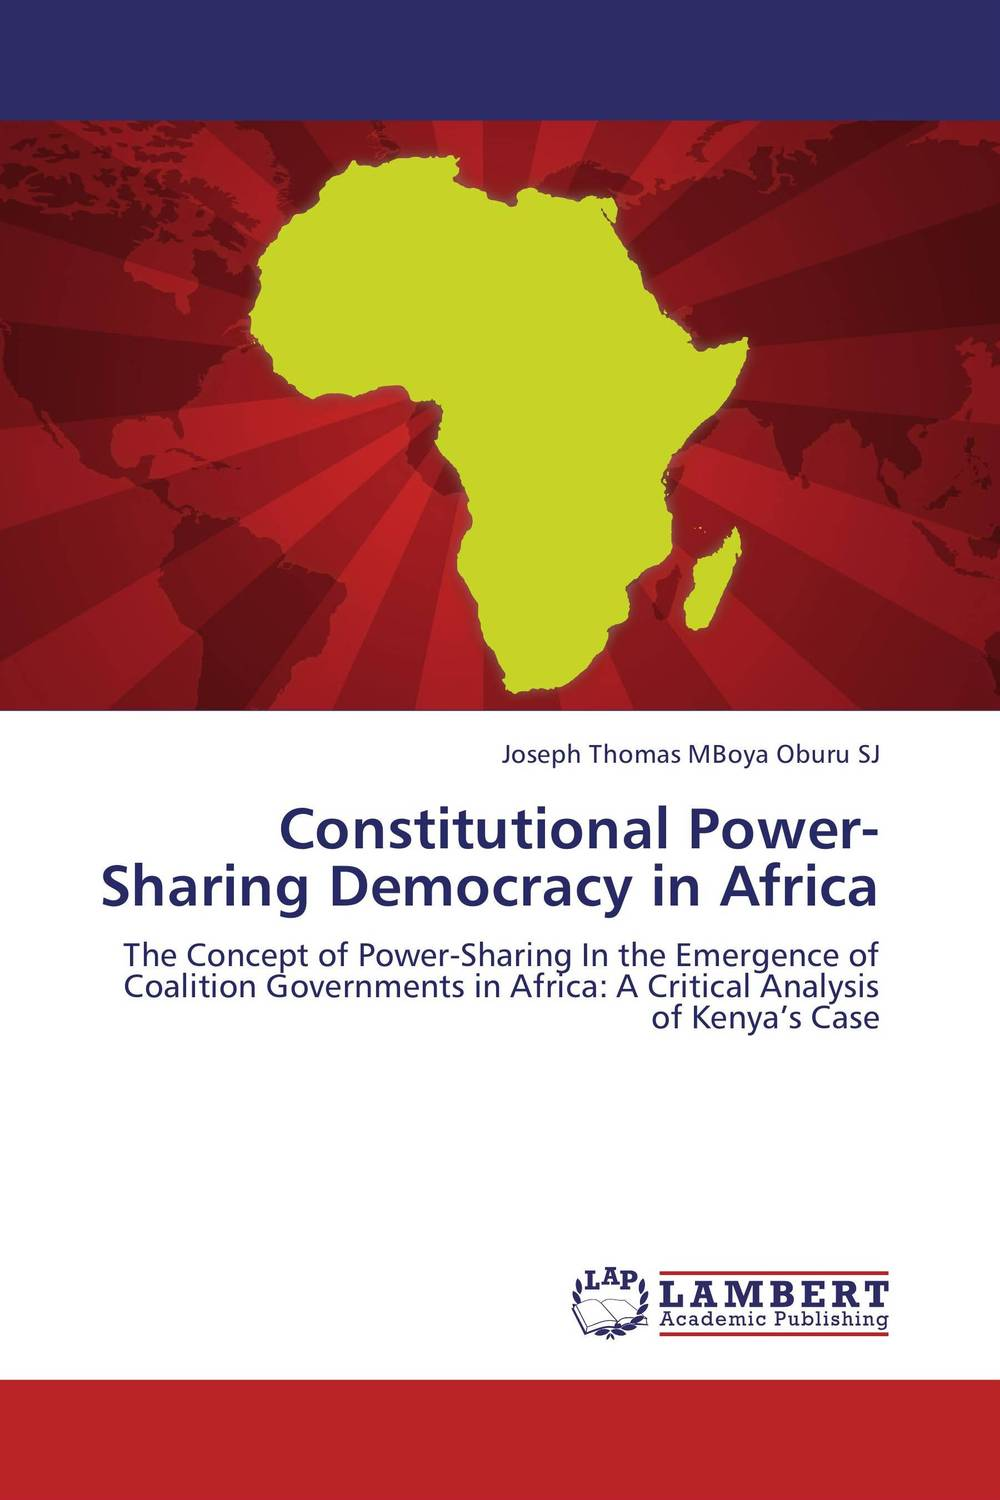 Constitutional Power-Sharing Democracy in Africa democracy in america nce